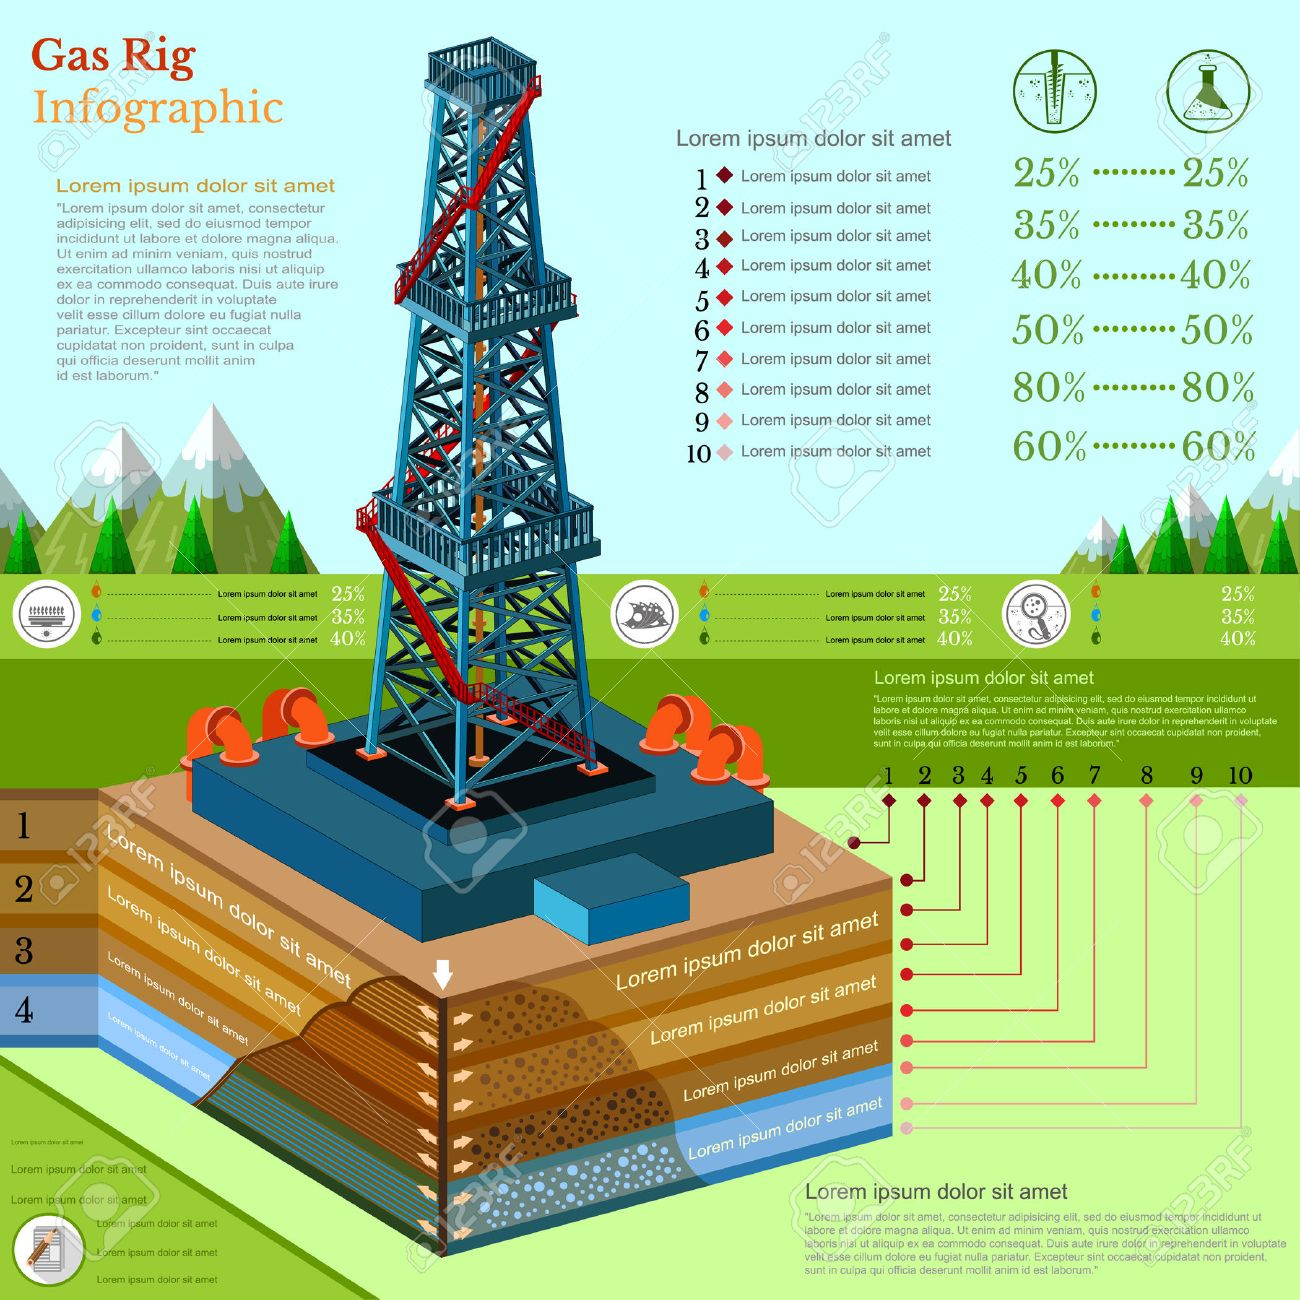 32941603-oil-derrick-tower-or-gas-rig-in